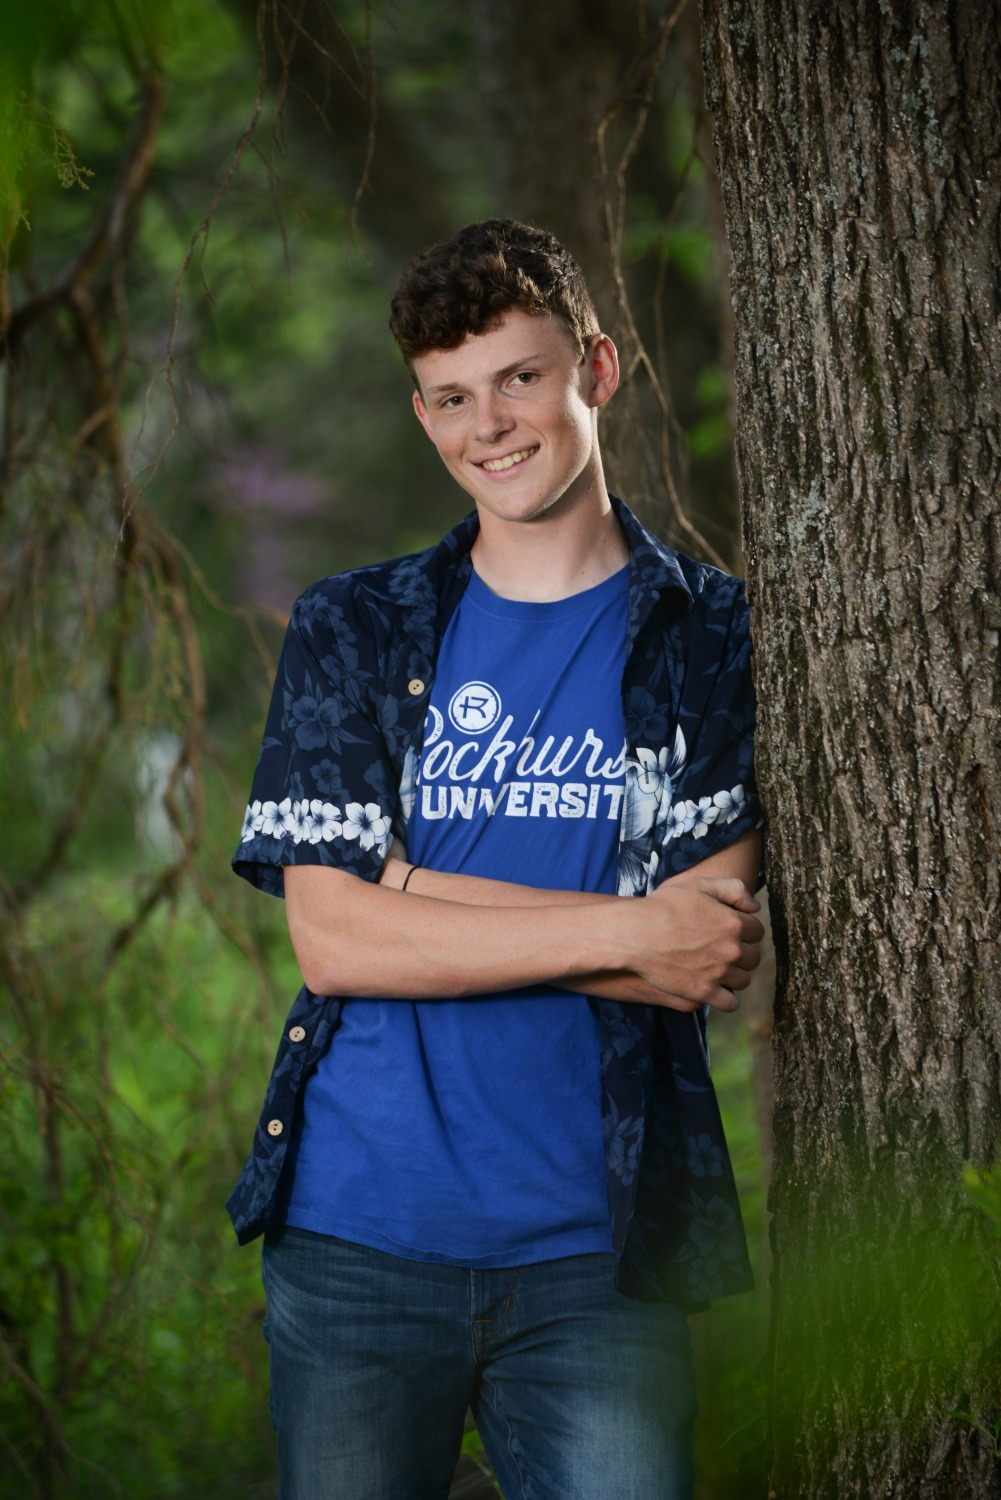 Senior%2520Portrait-1_edited_edited